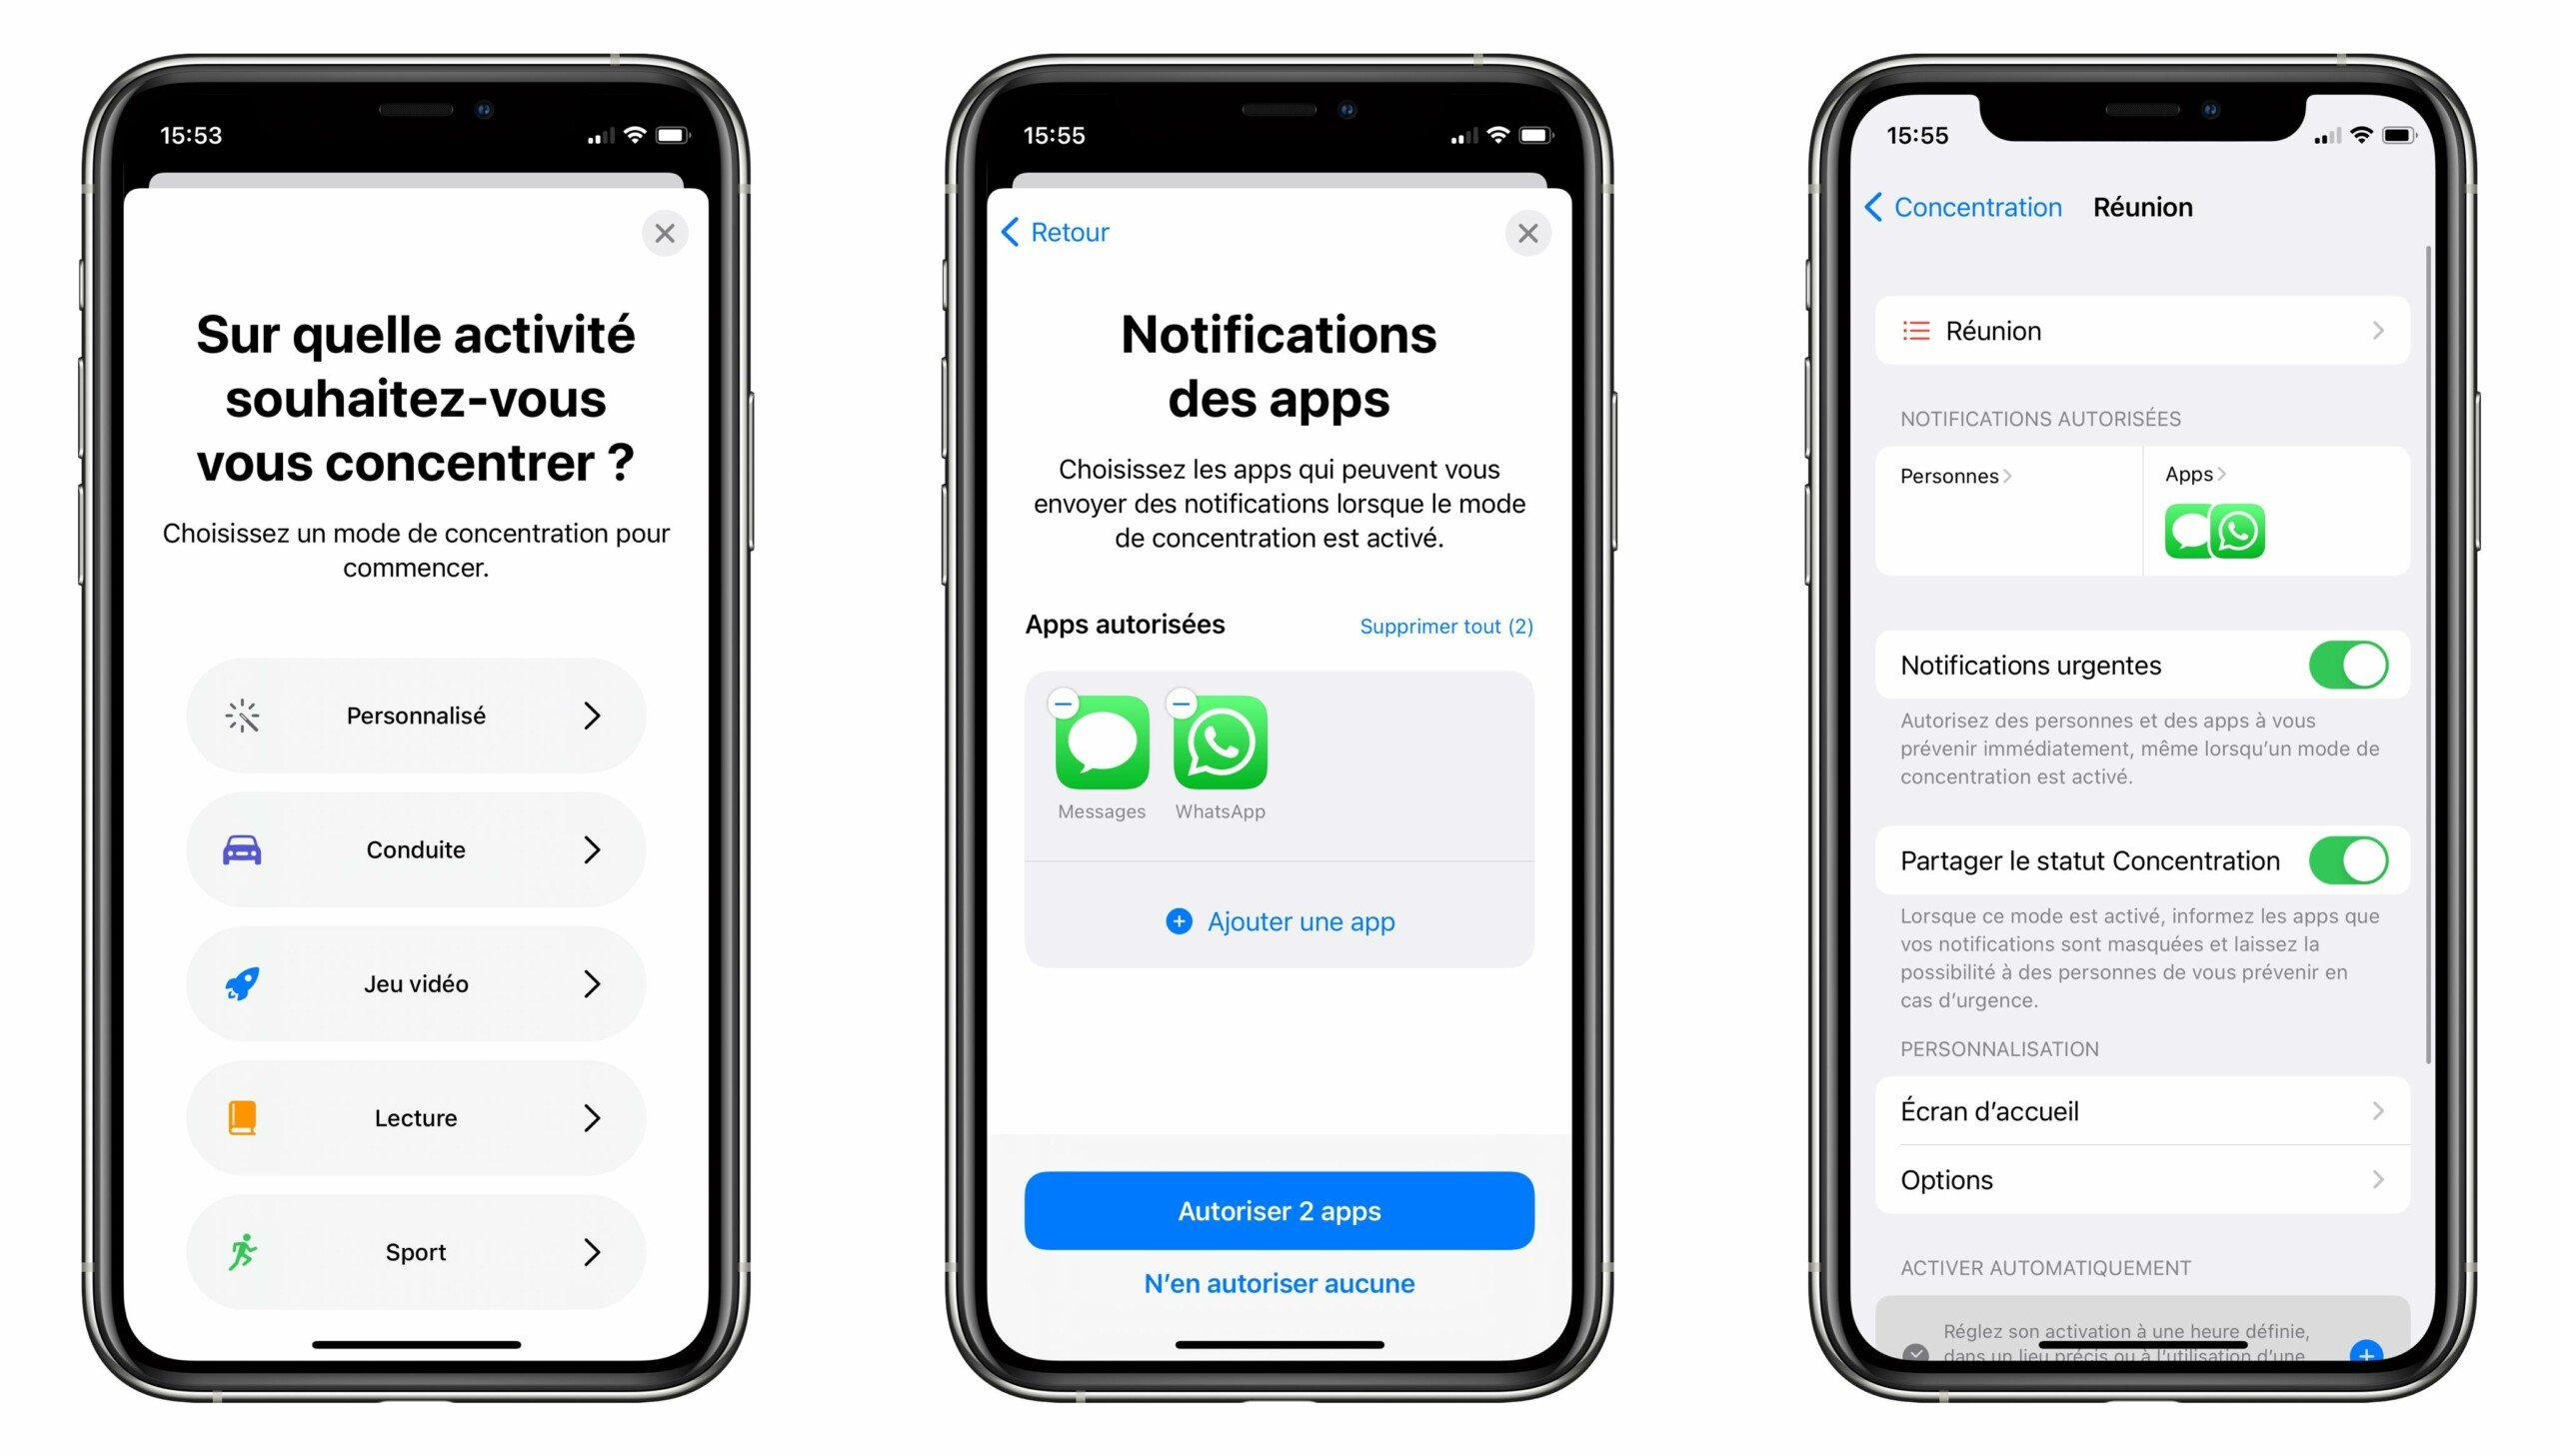 IOS 15 and iPadOS 15 will be released on September 20: 5 most important new features for iPhone and iPad